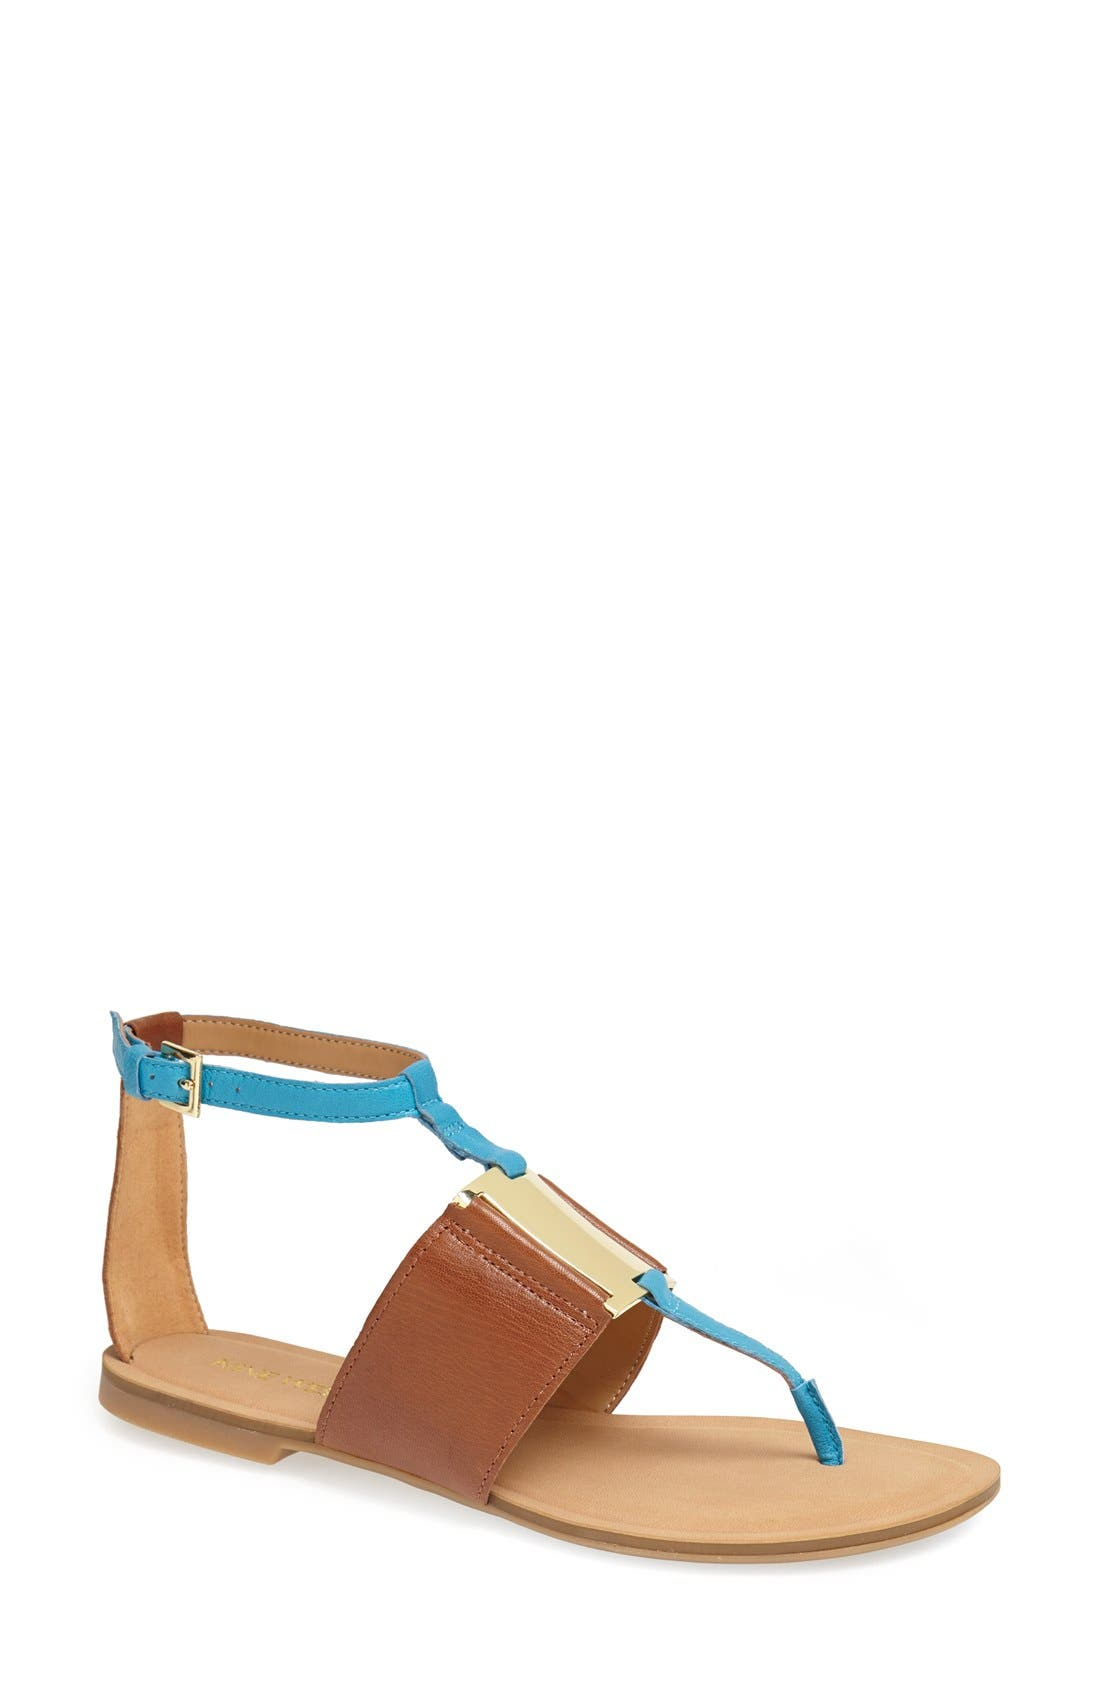 Alternate Image 1 Selected - Nine West 'Performac' Thong Sandal